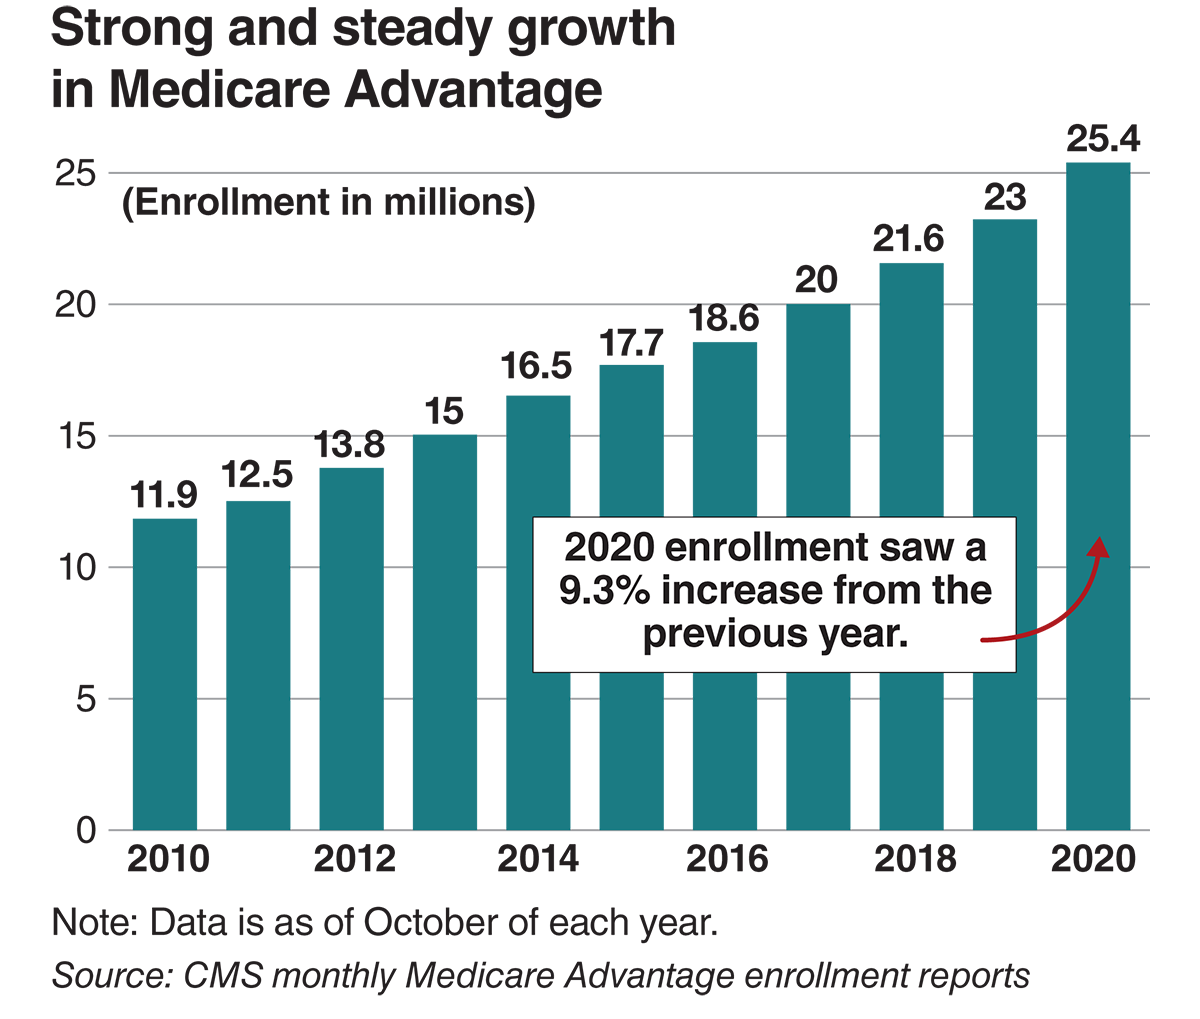 Steady and strong growth in Medicare Advantage